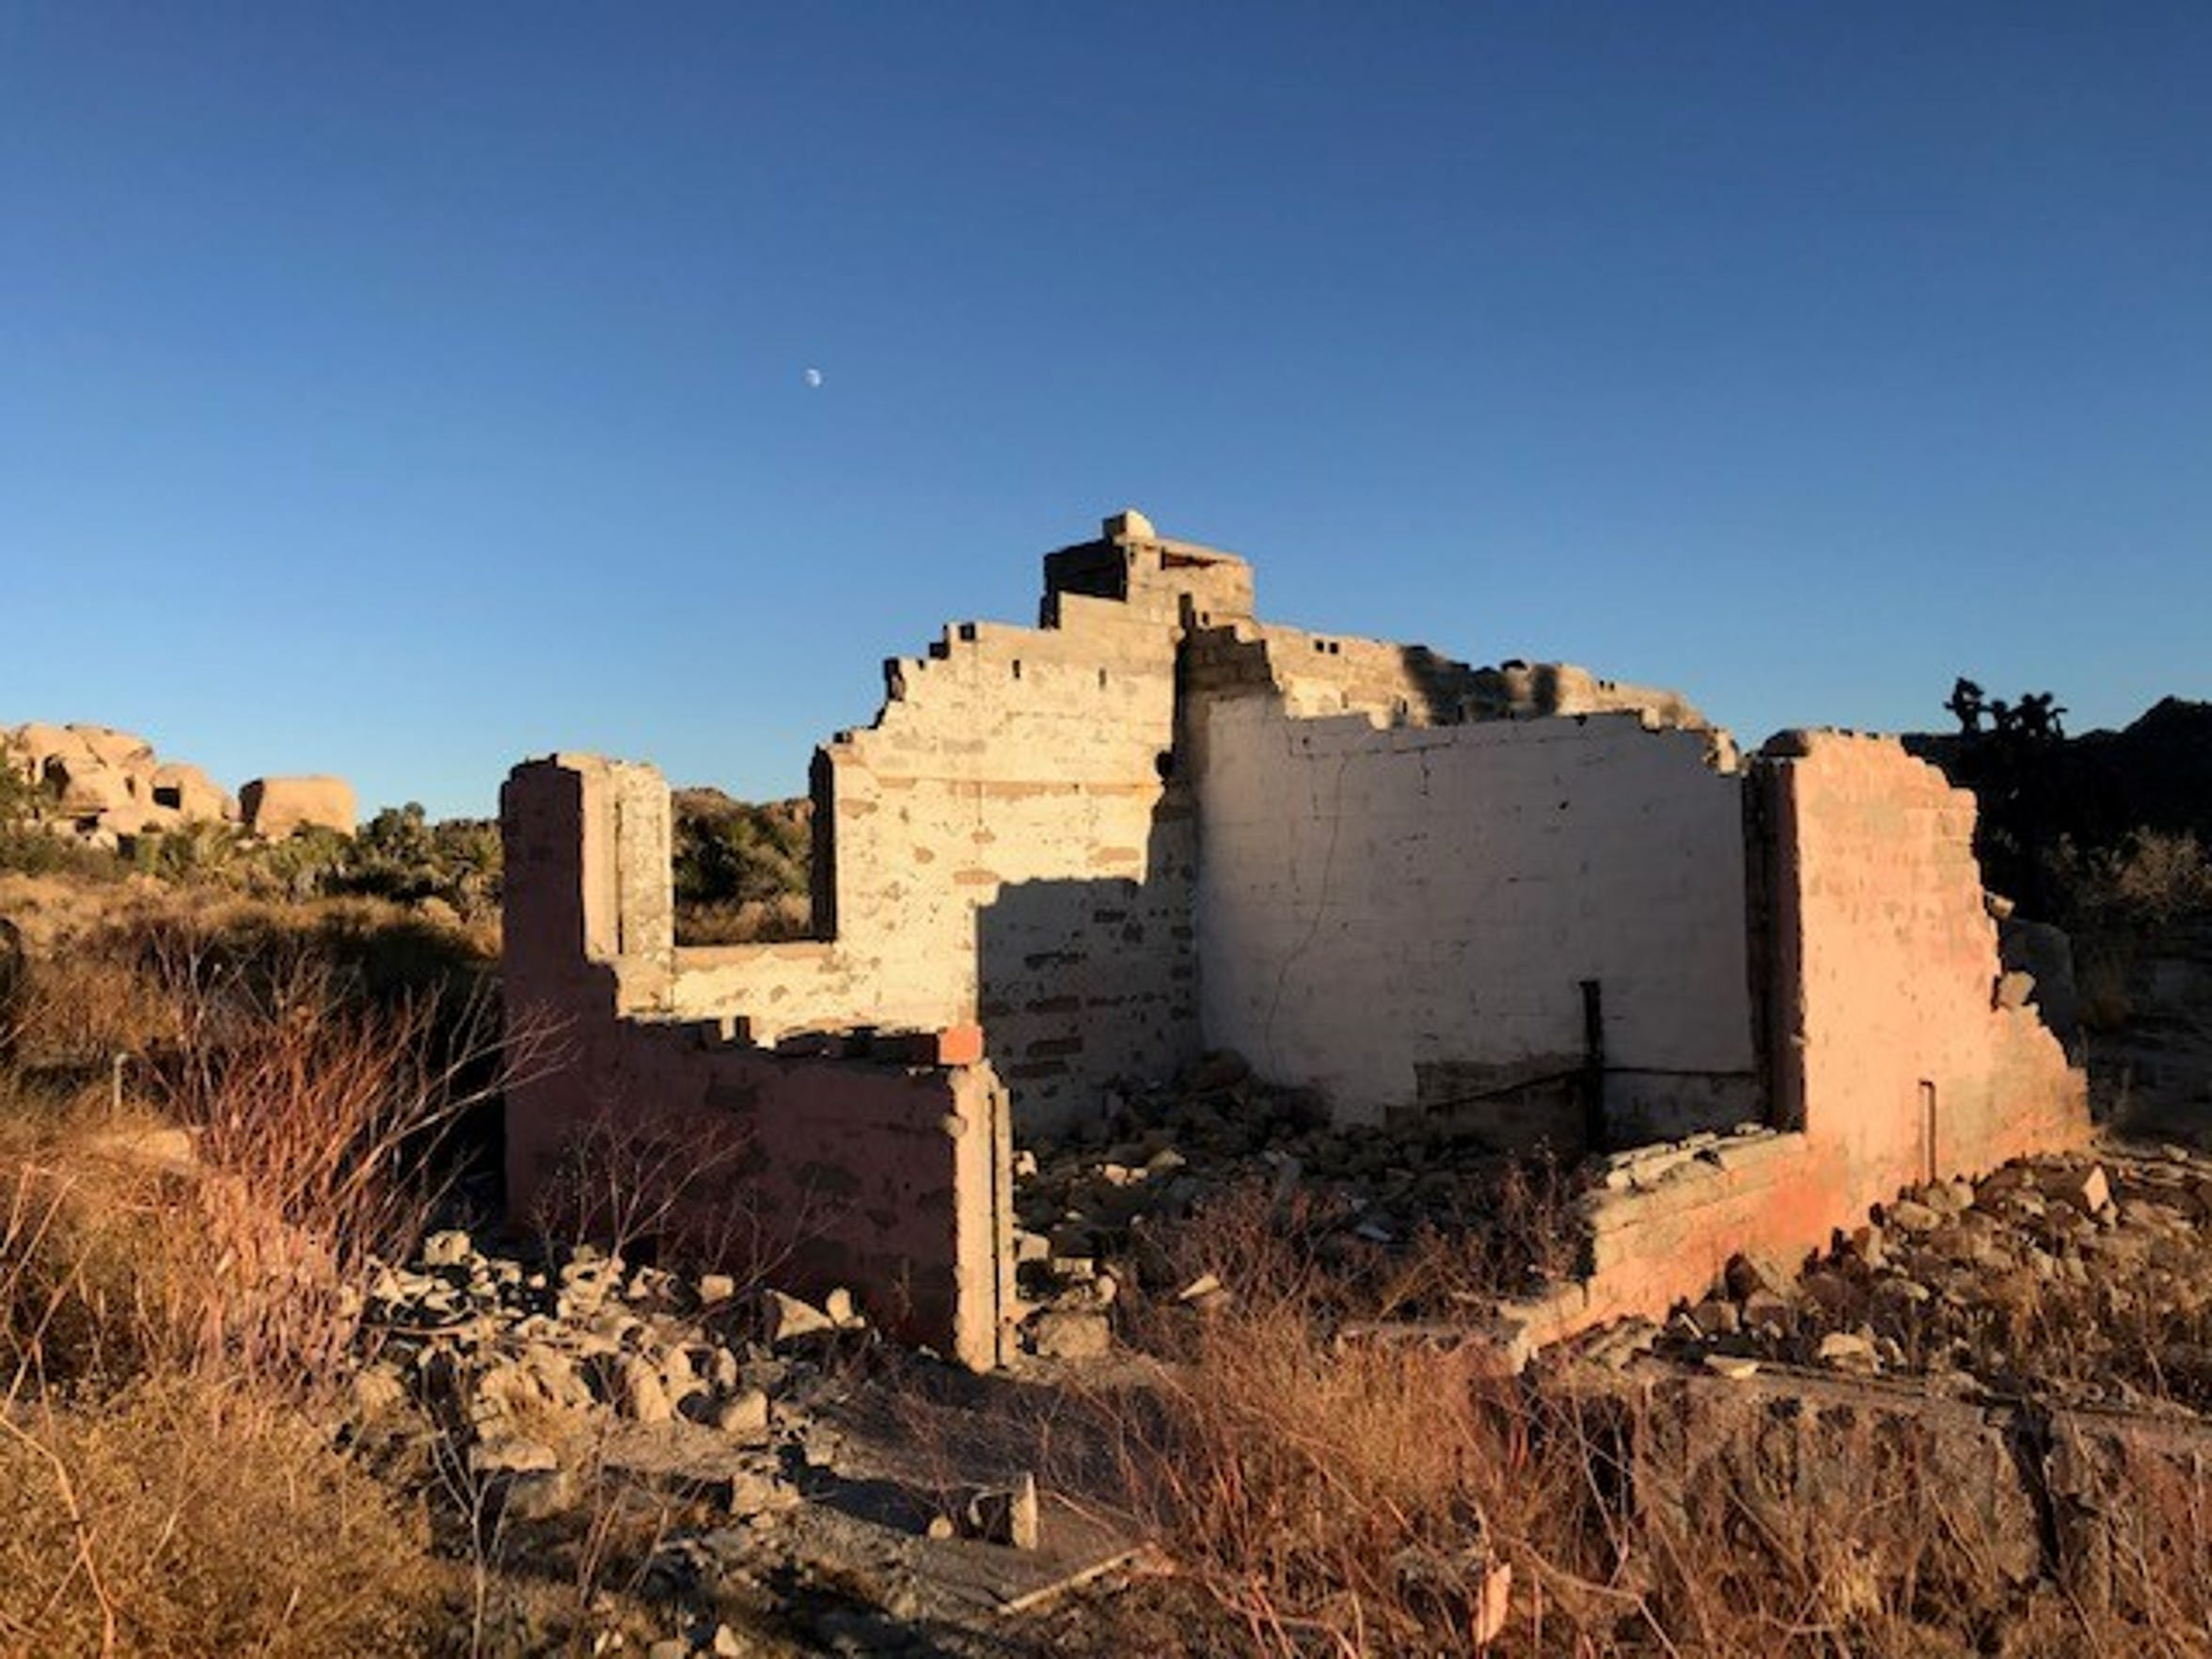 The ruins of the Bagley-Ohlson home site in Joshua Tree National Park